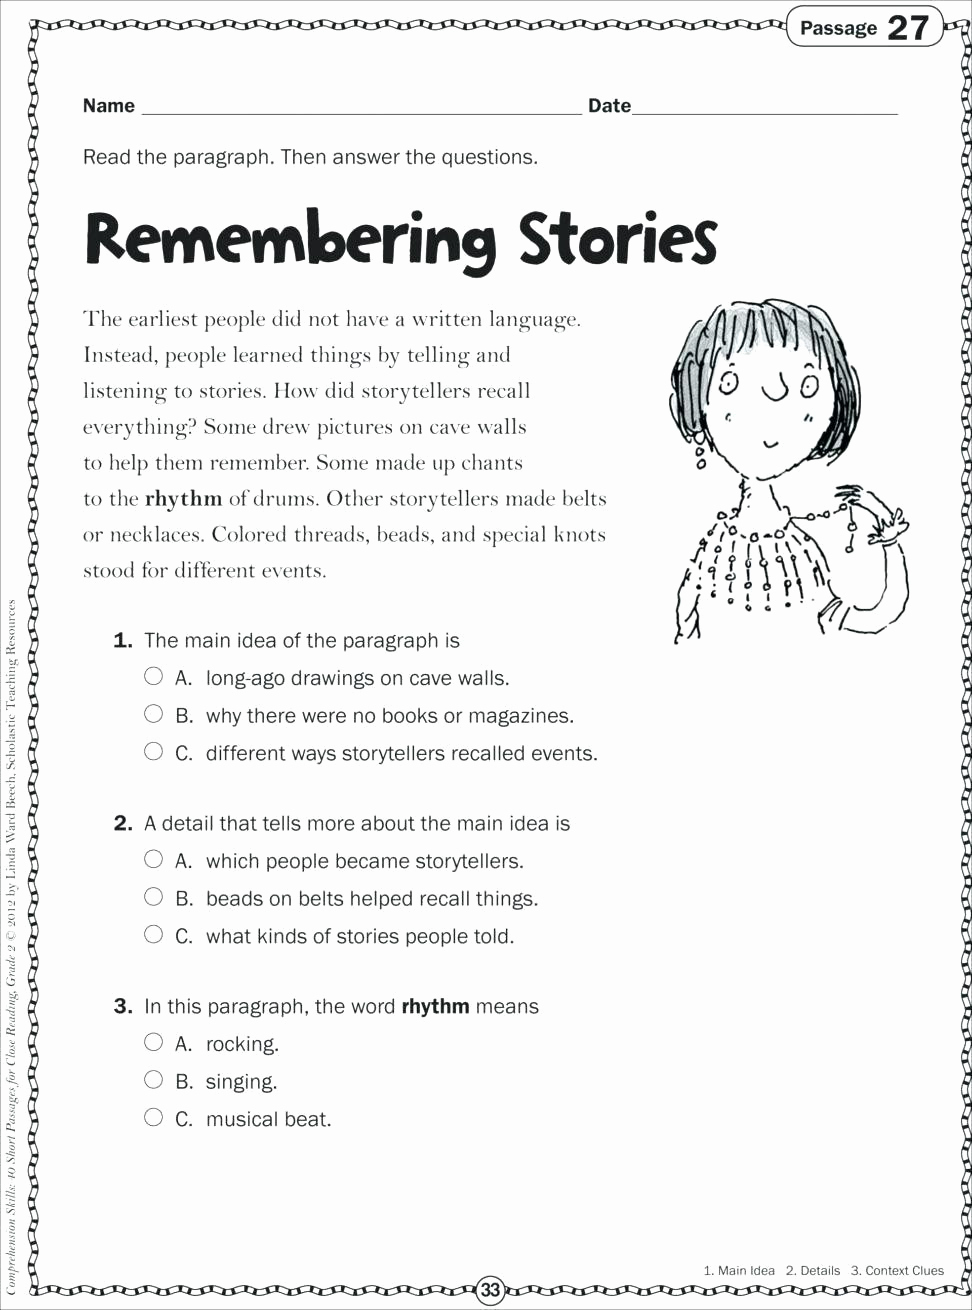 Context Clues Worksheets 1st Grade Lovely 20 Context Clues Worksheets 1st Grade